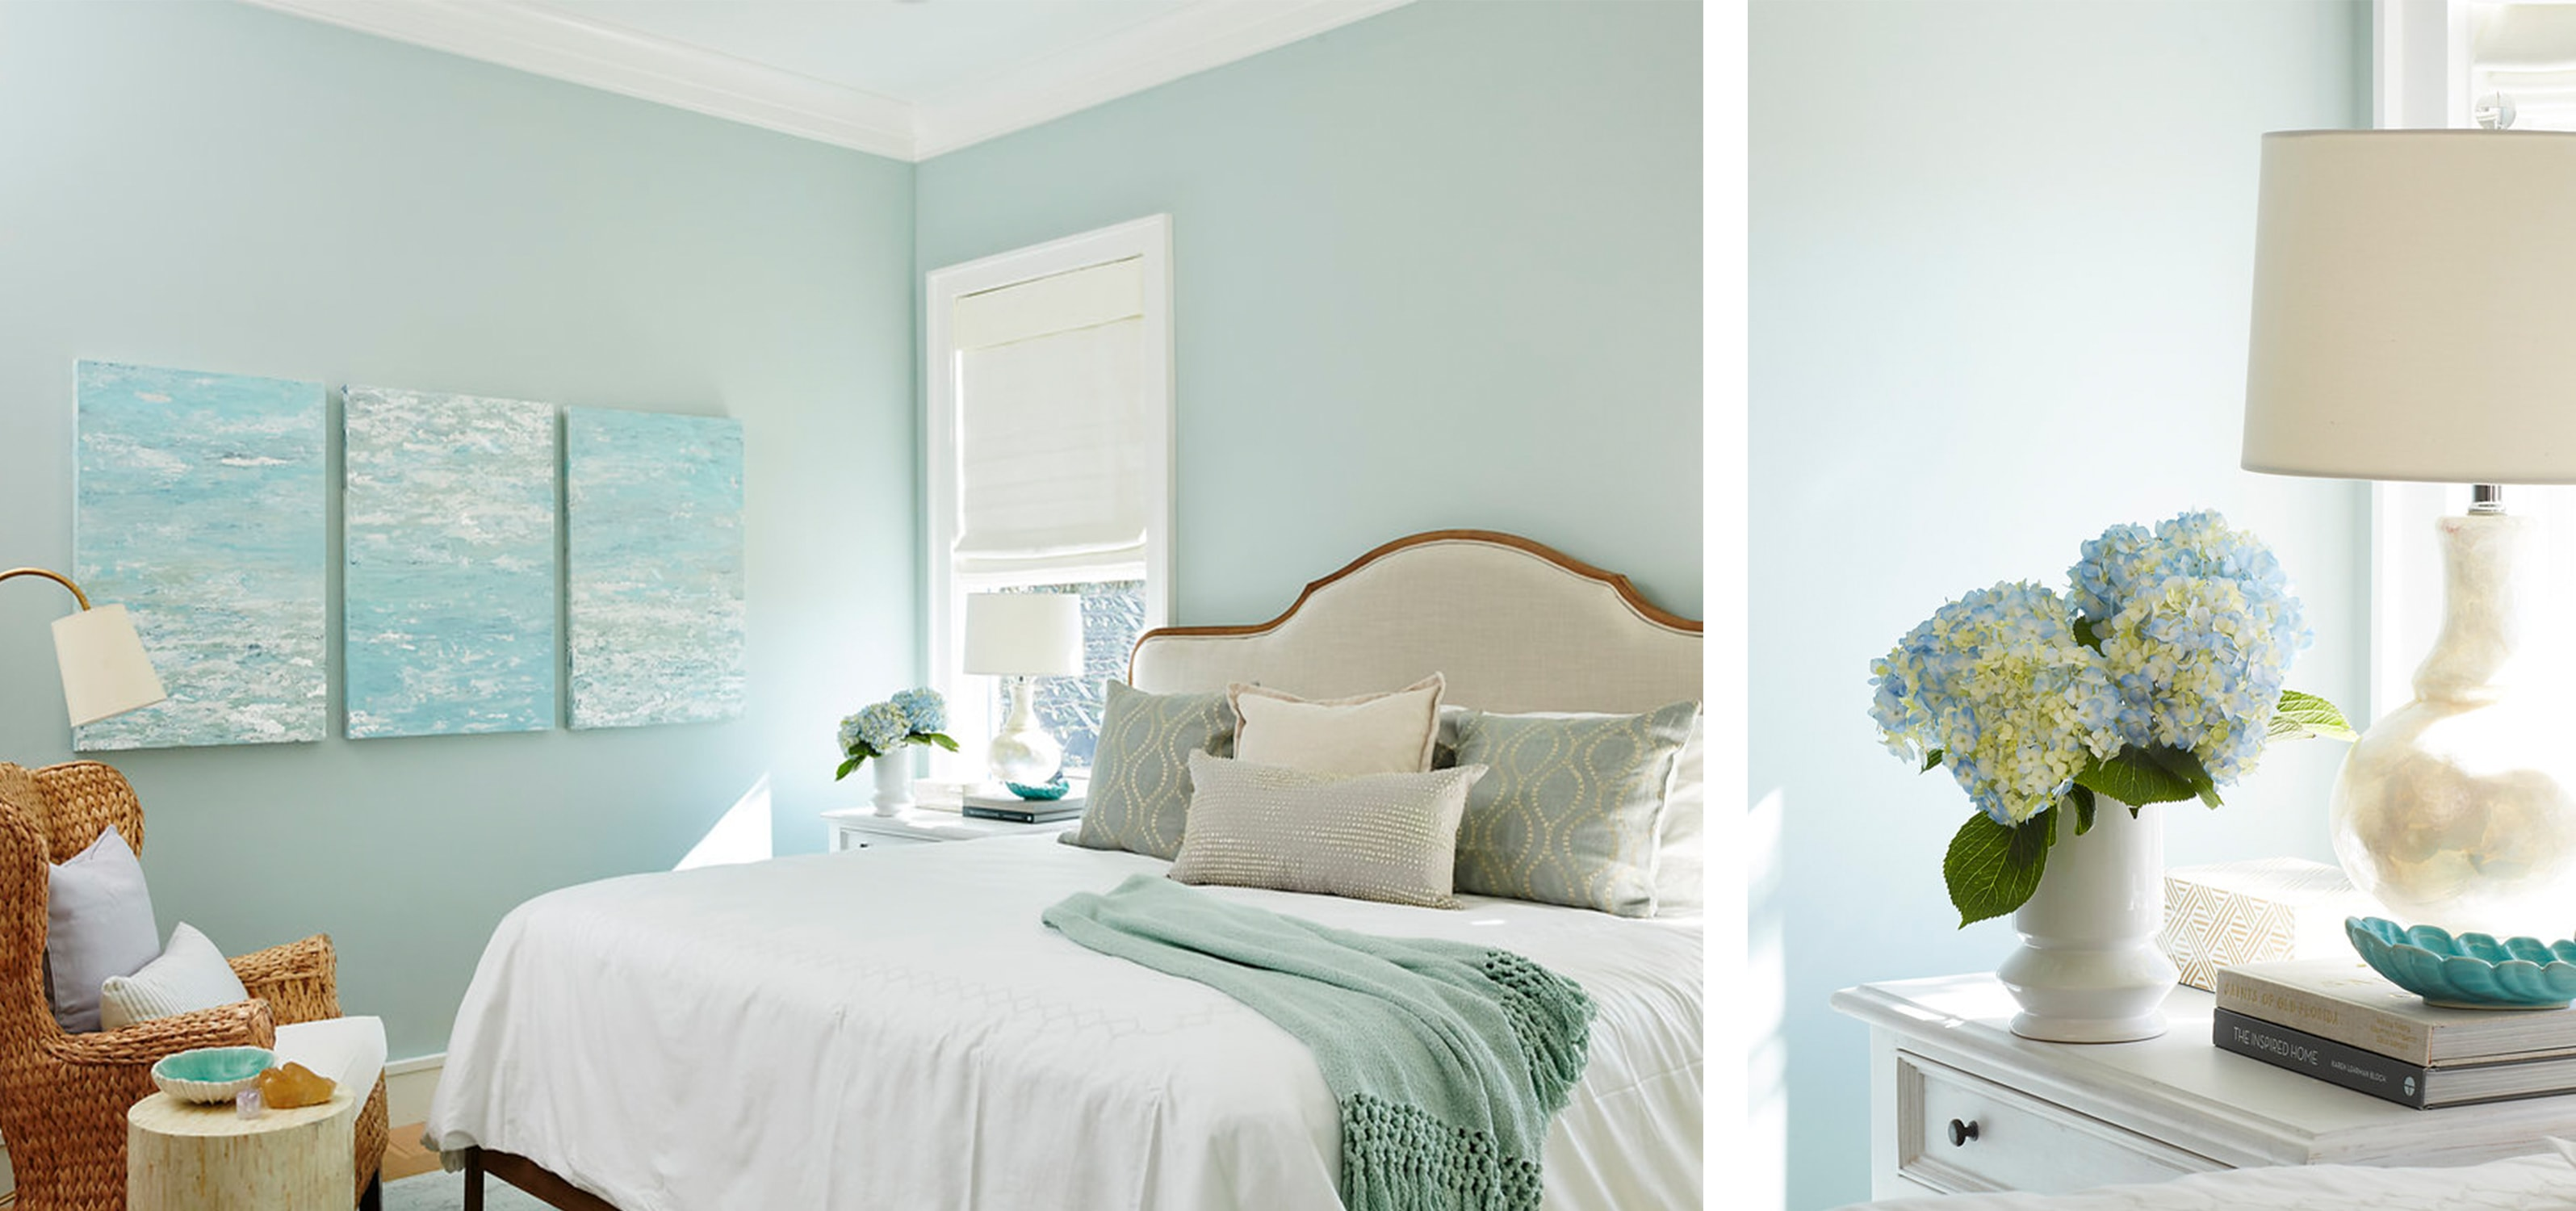 florida beach house guest bedroom with a wicker side chair and blue accents. - darci hether new york